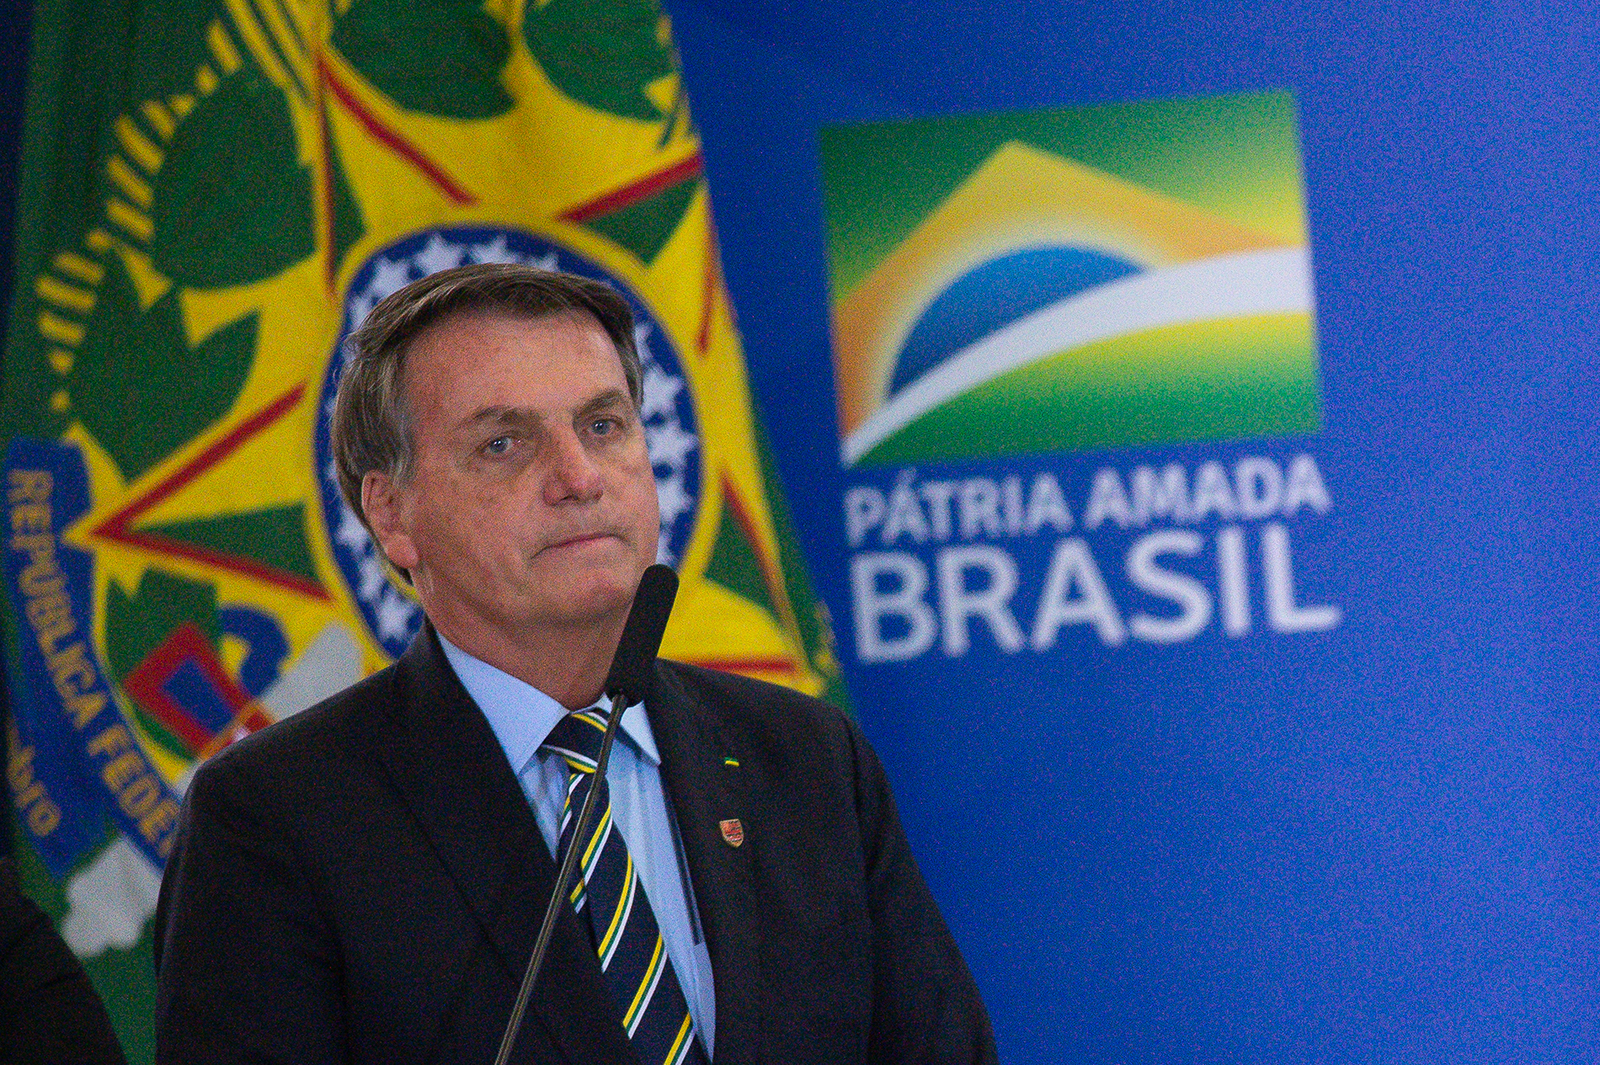 President of Brazil Jair Bolsonaro speaks at the Planalto Palace in Brasilia, Brazil on June 17.